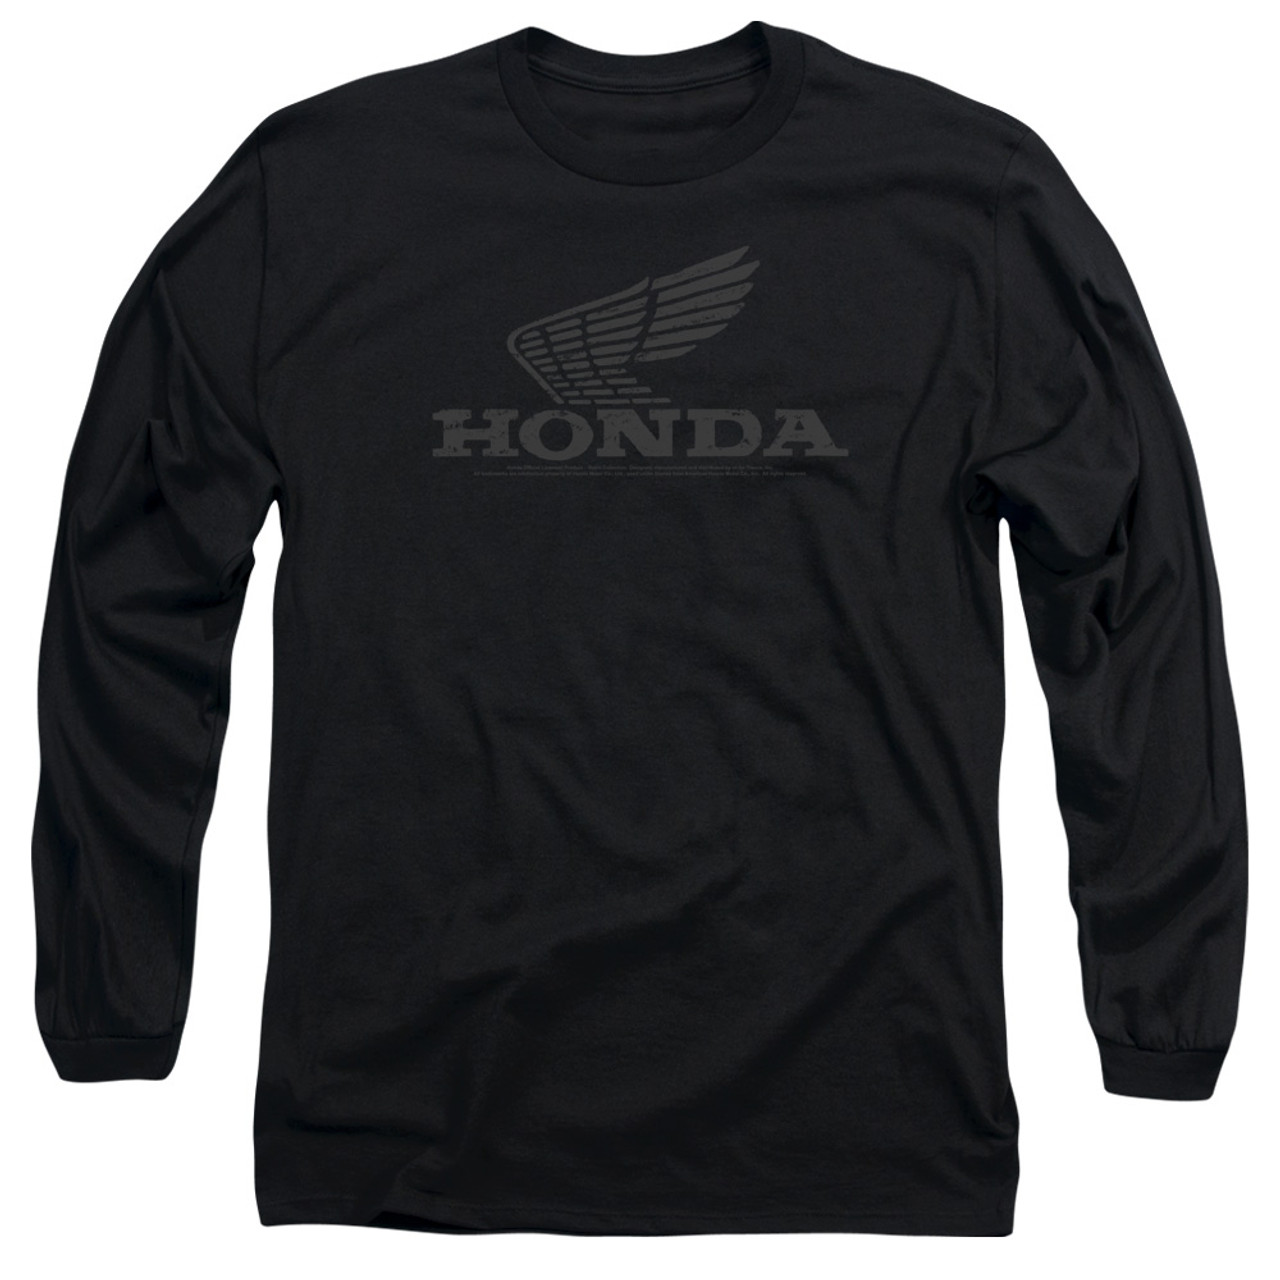 Honda Toddler T-Shirt White Standard Logo Black Tee